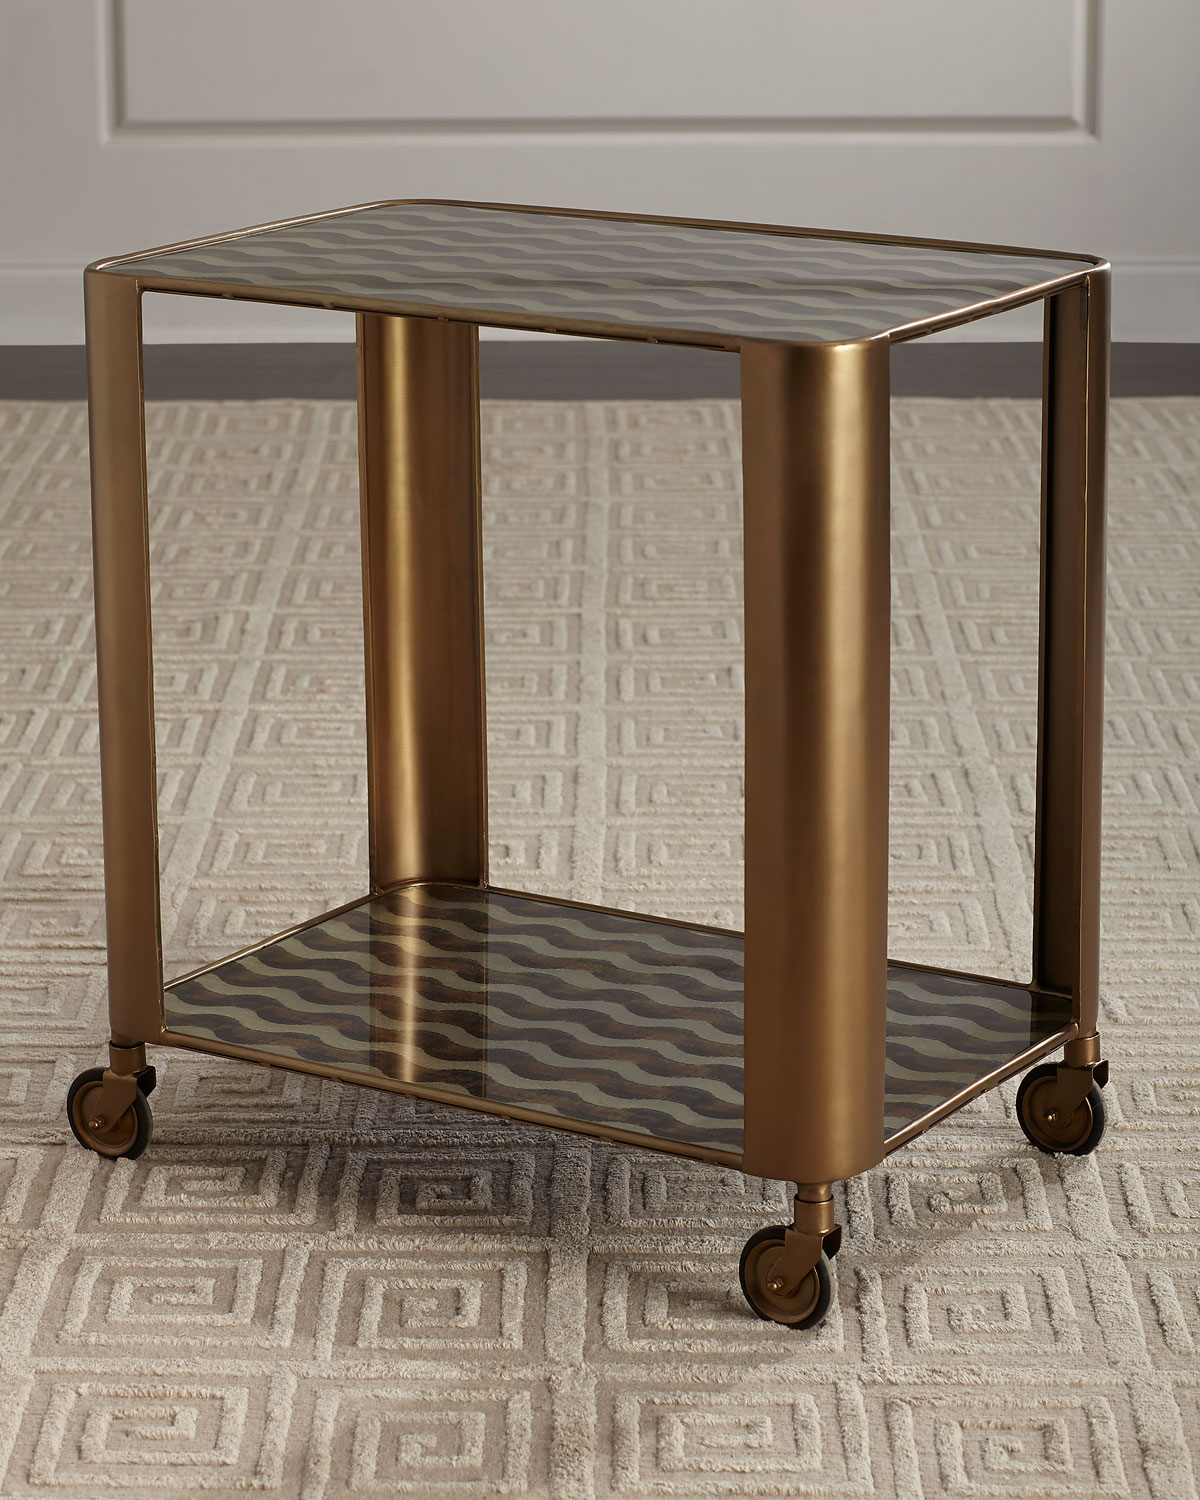 Celerie Kemble for Arteriors Tinsley Bar Cart